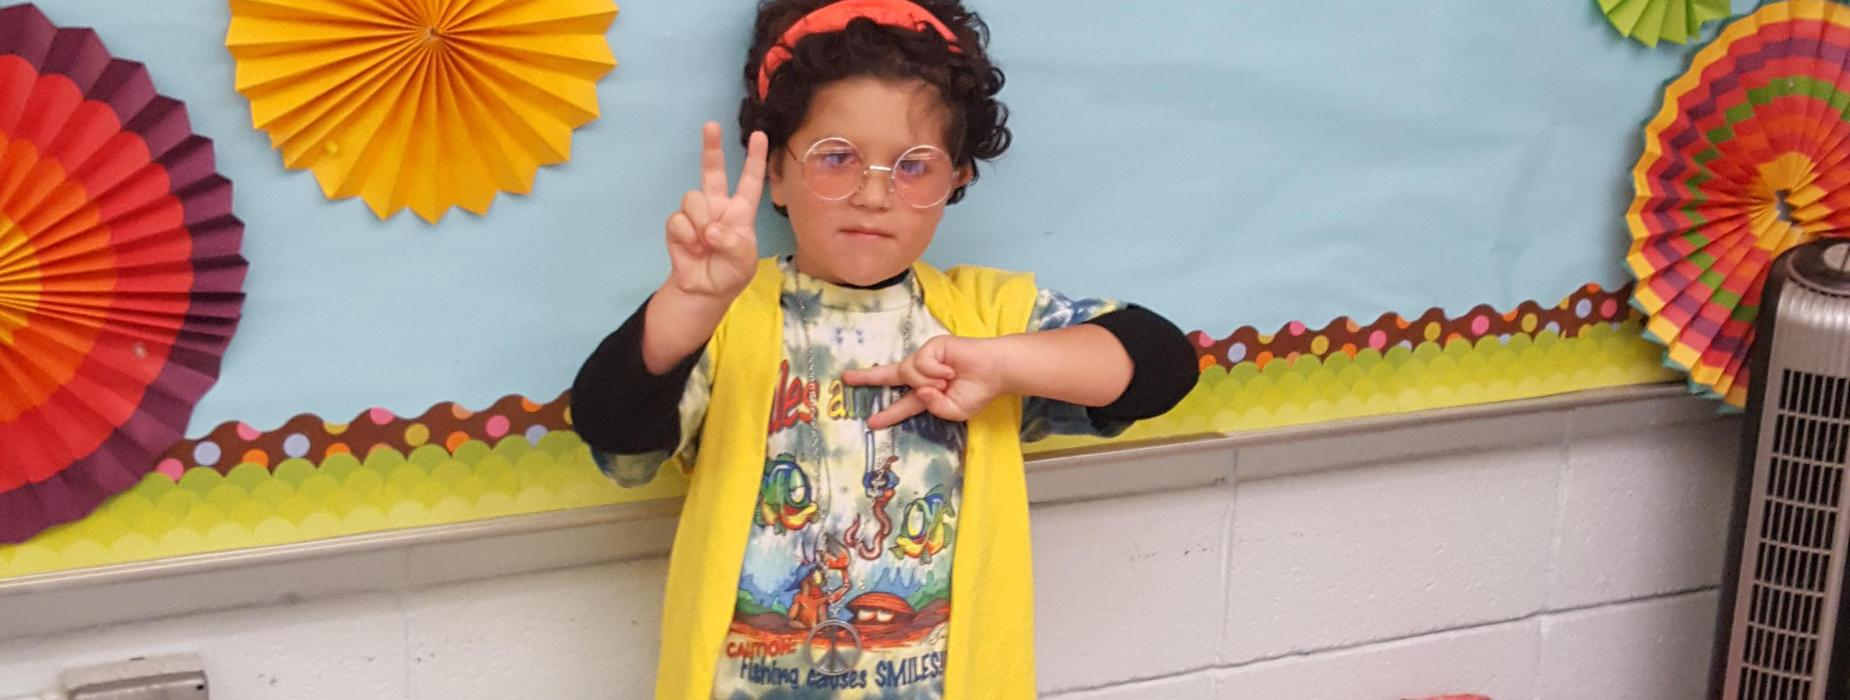 Cool Dude in 1st grade!